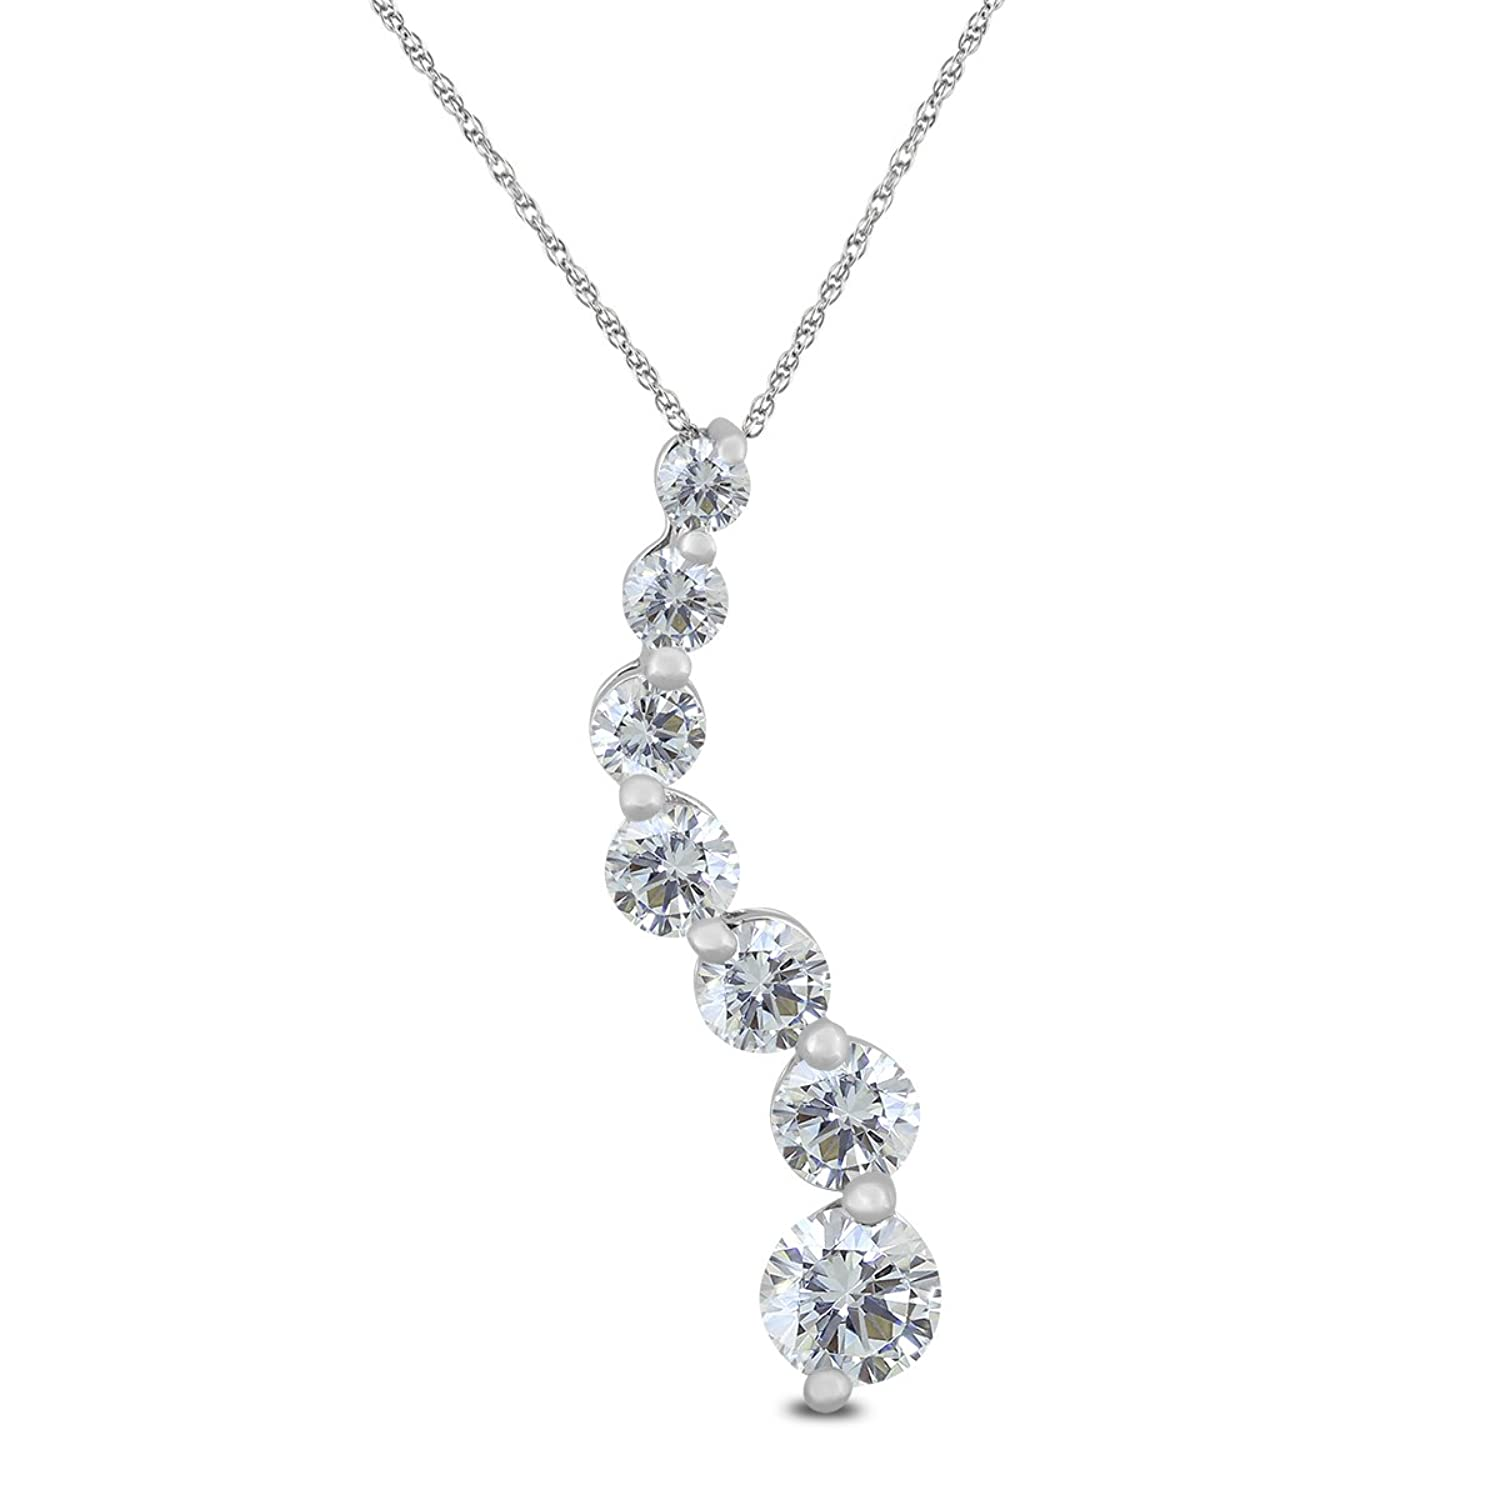 1/2 Carat Diamond Journey Pendant in 10K White Gold